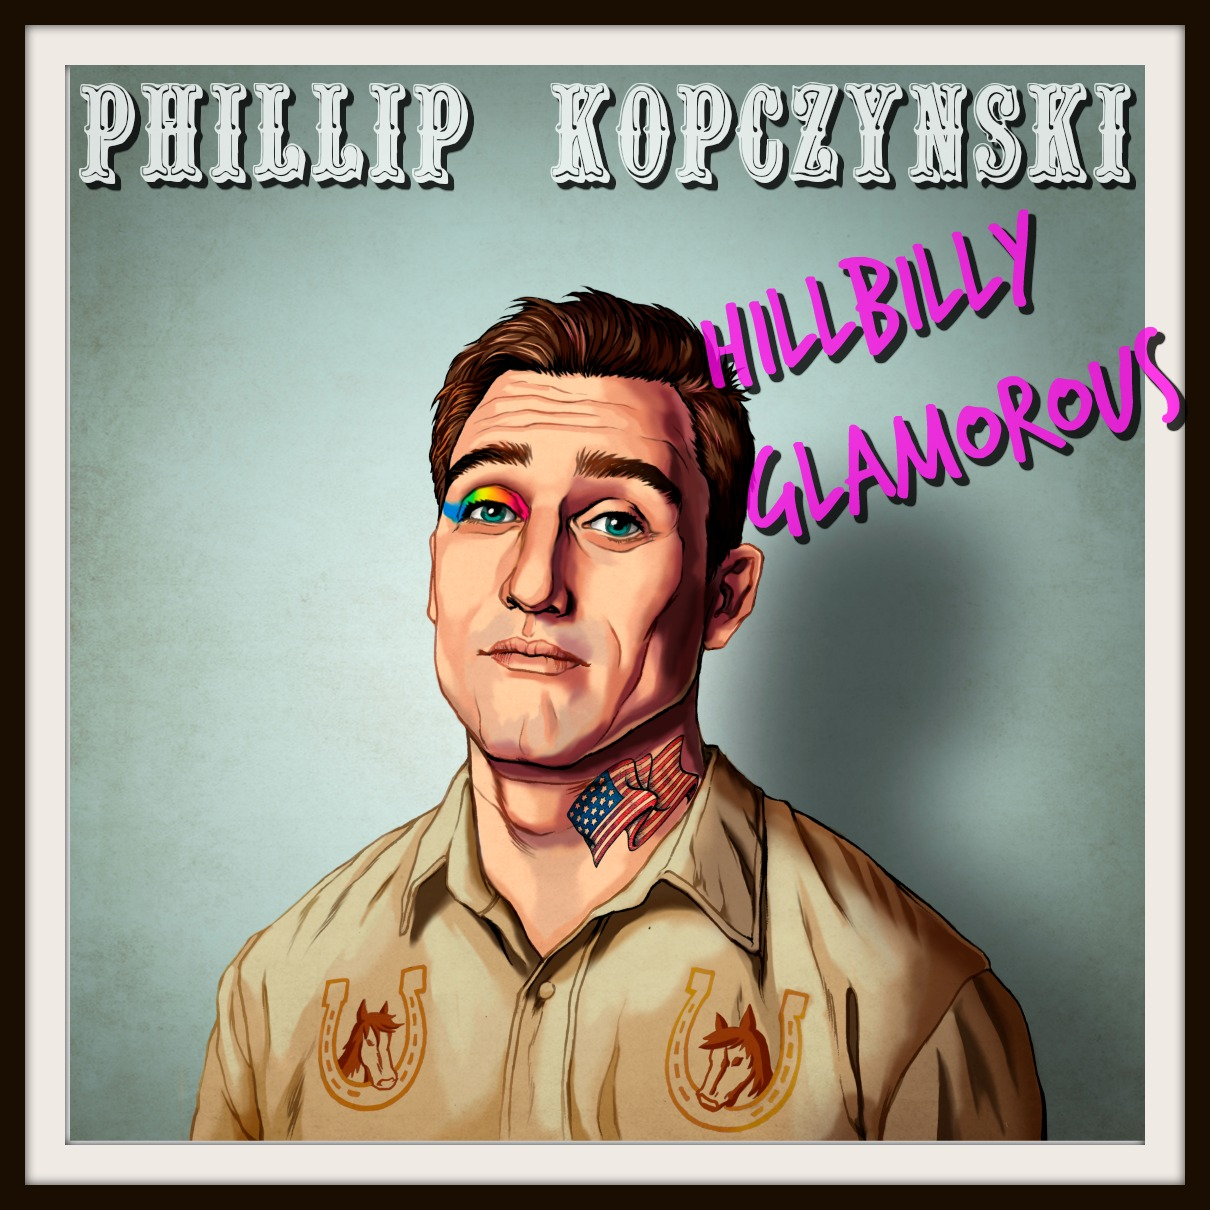 BUY HERE $5 - Hillbilly Glamorous was recorded at the Big Dipper in Spokane, WA. It is Phillip Kopczynski's first album.